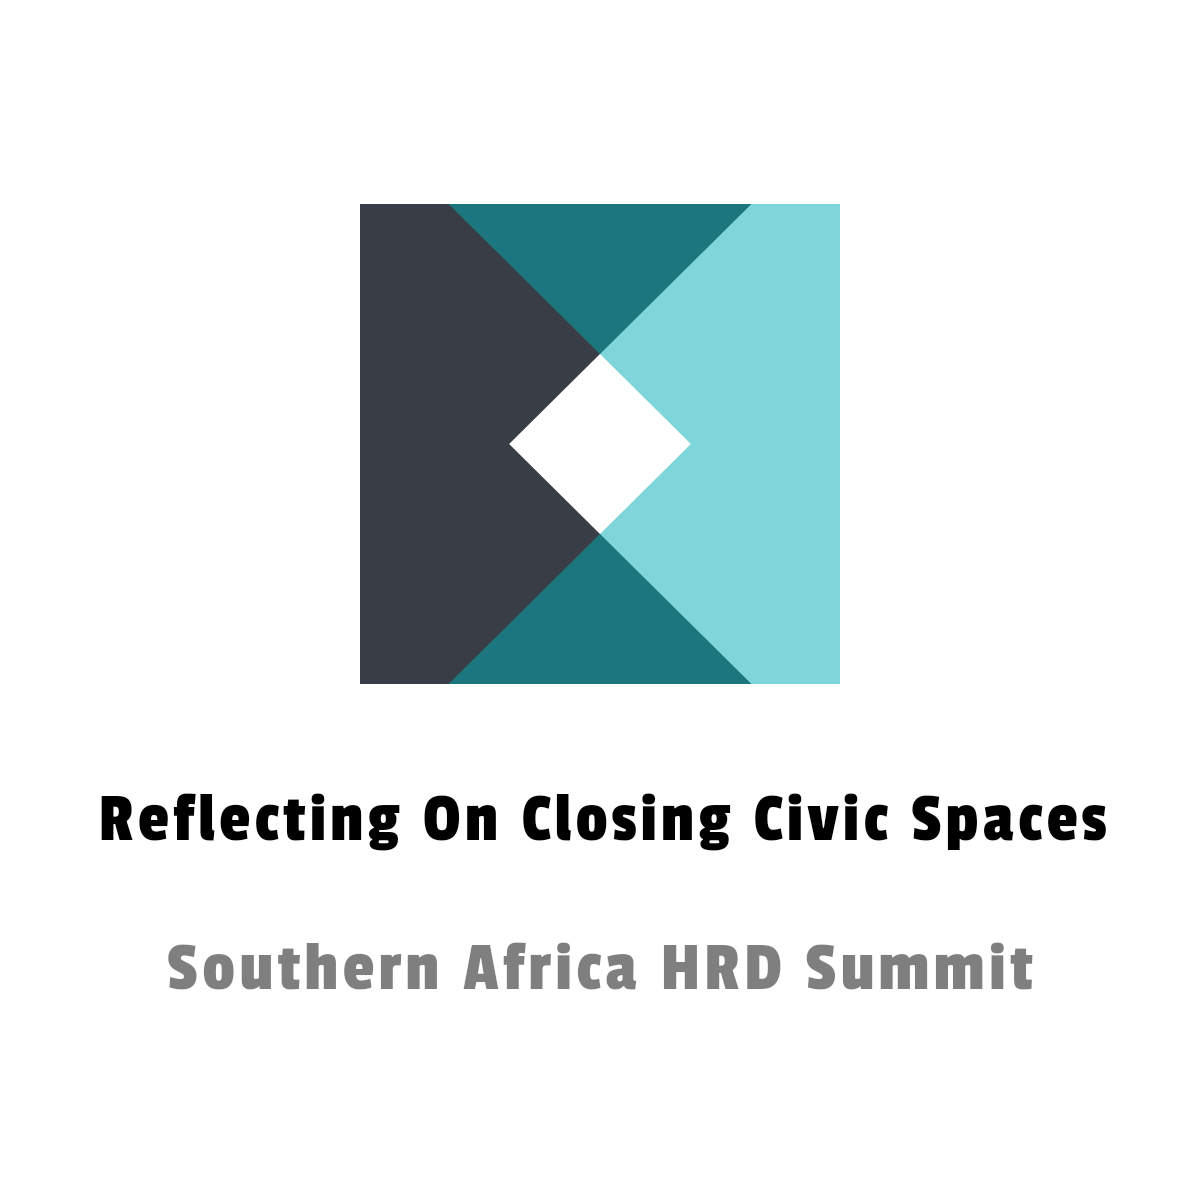 Publication: Reflecting on the Closing of Civic Spaces in Southern Africa